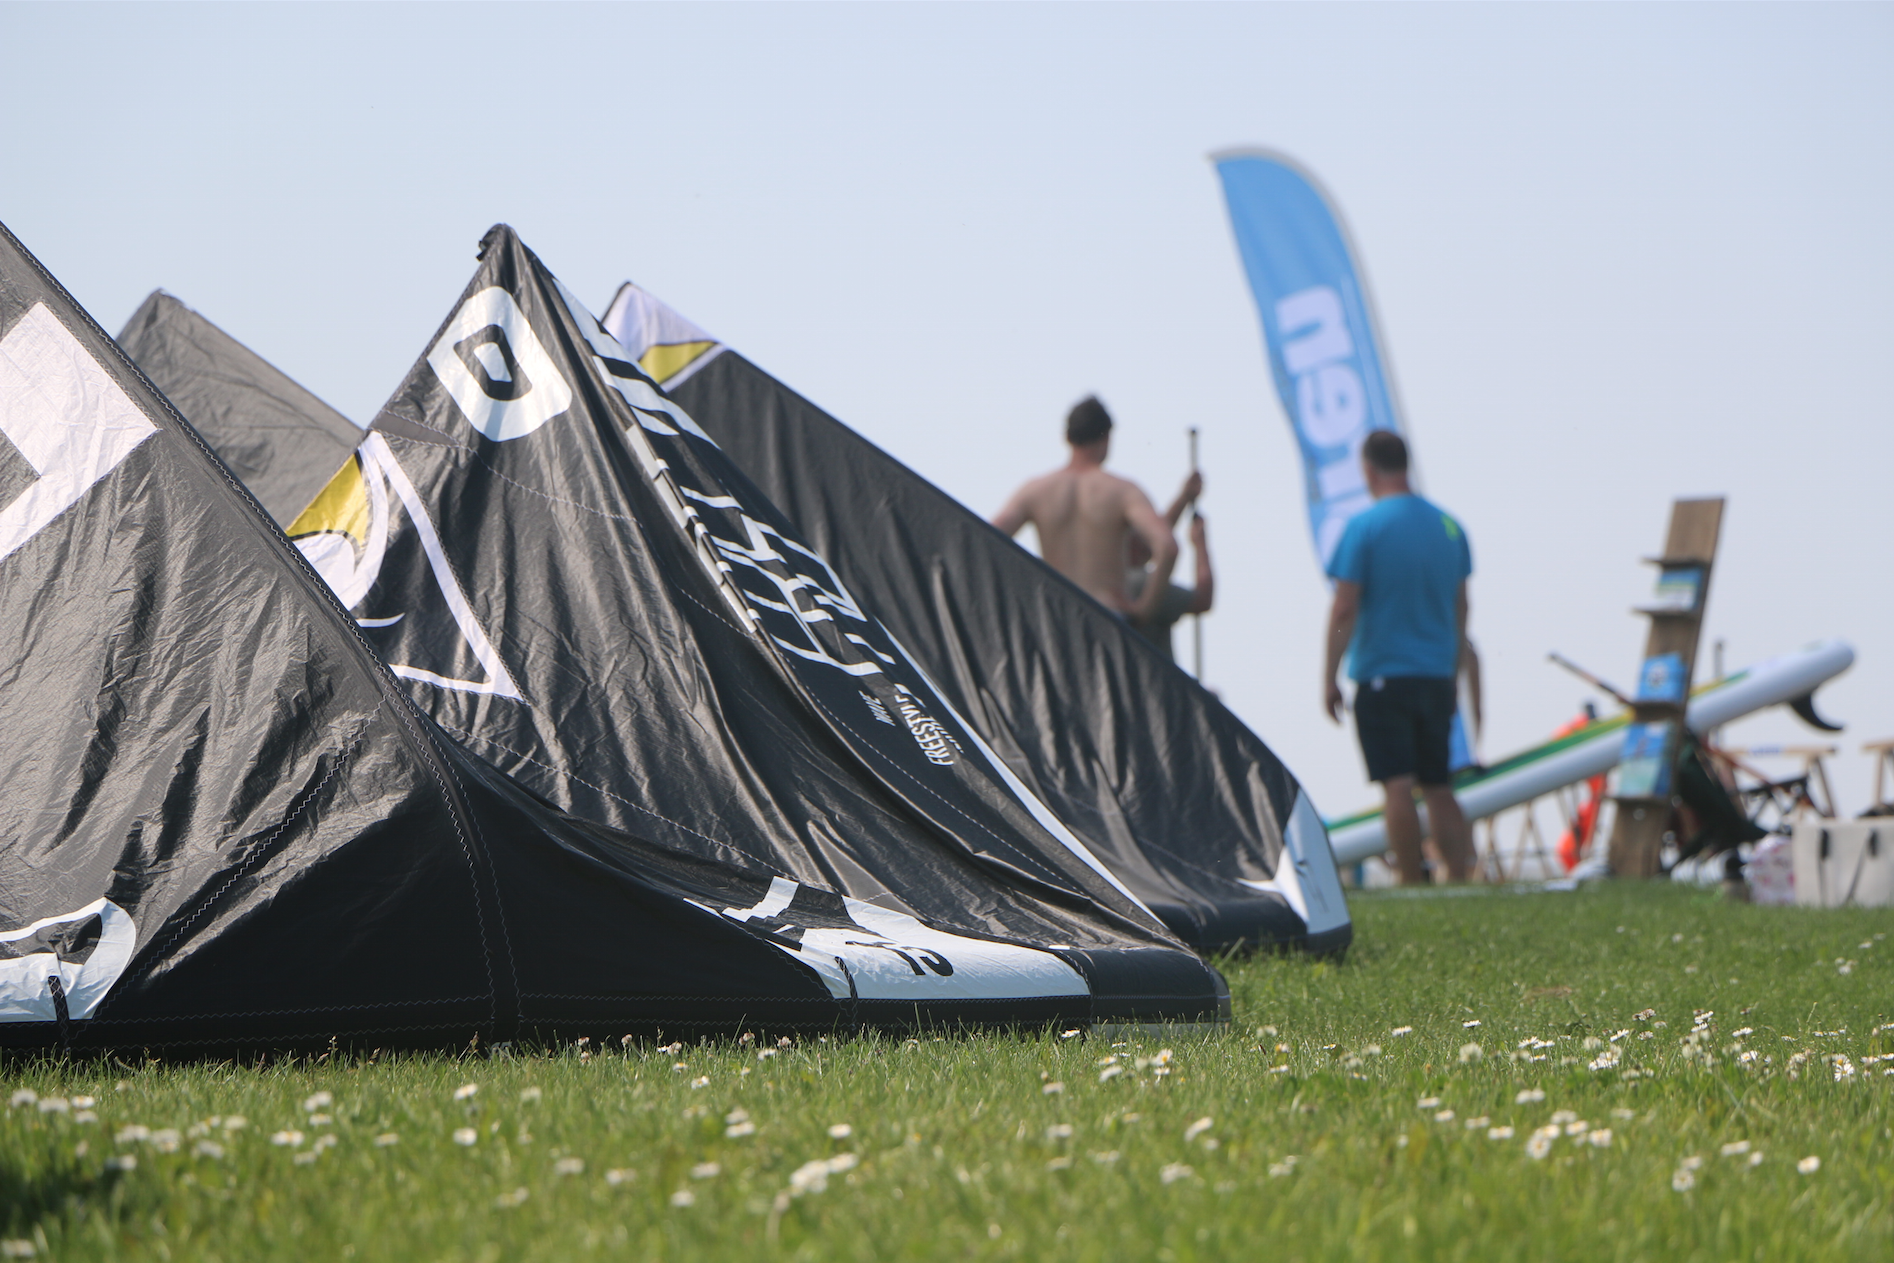 kite-buddy-testevent-bremerhaven